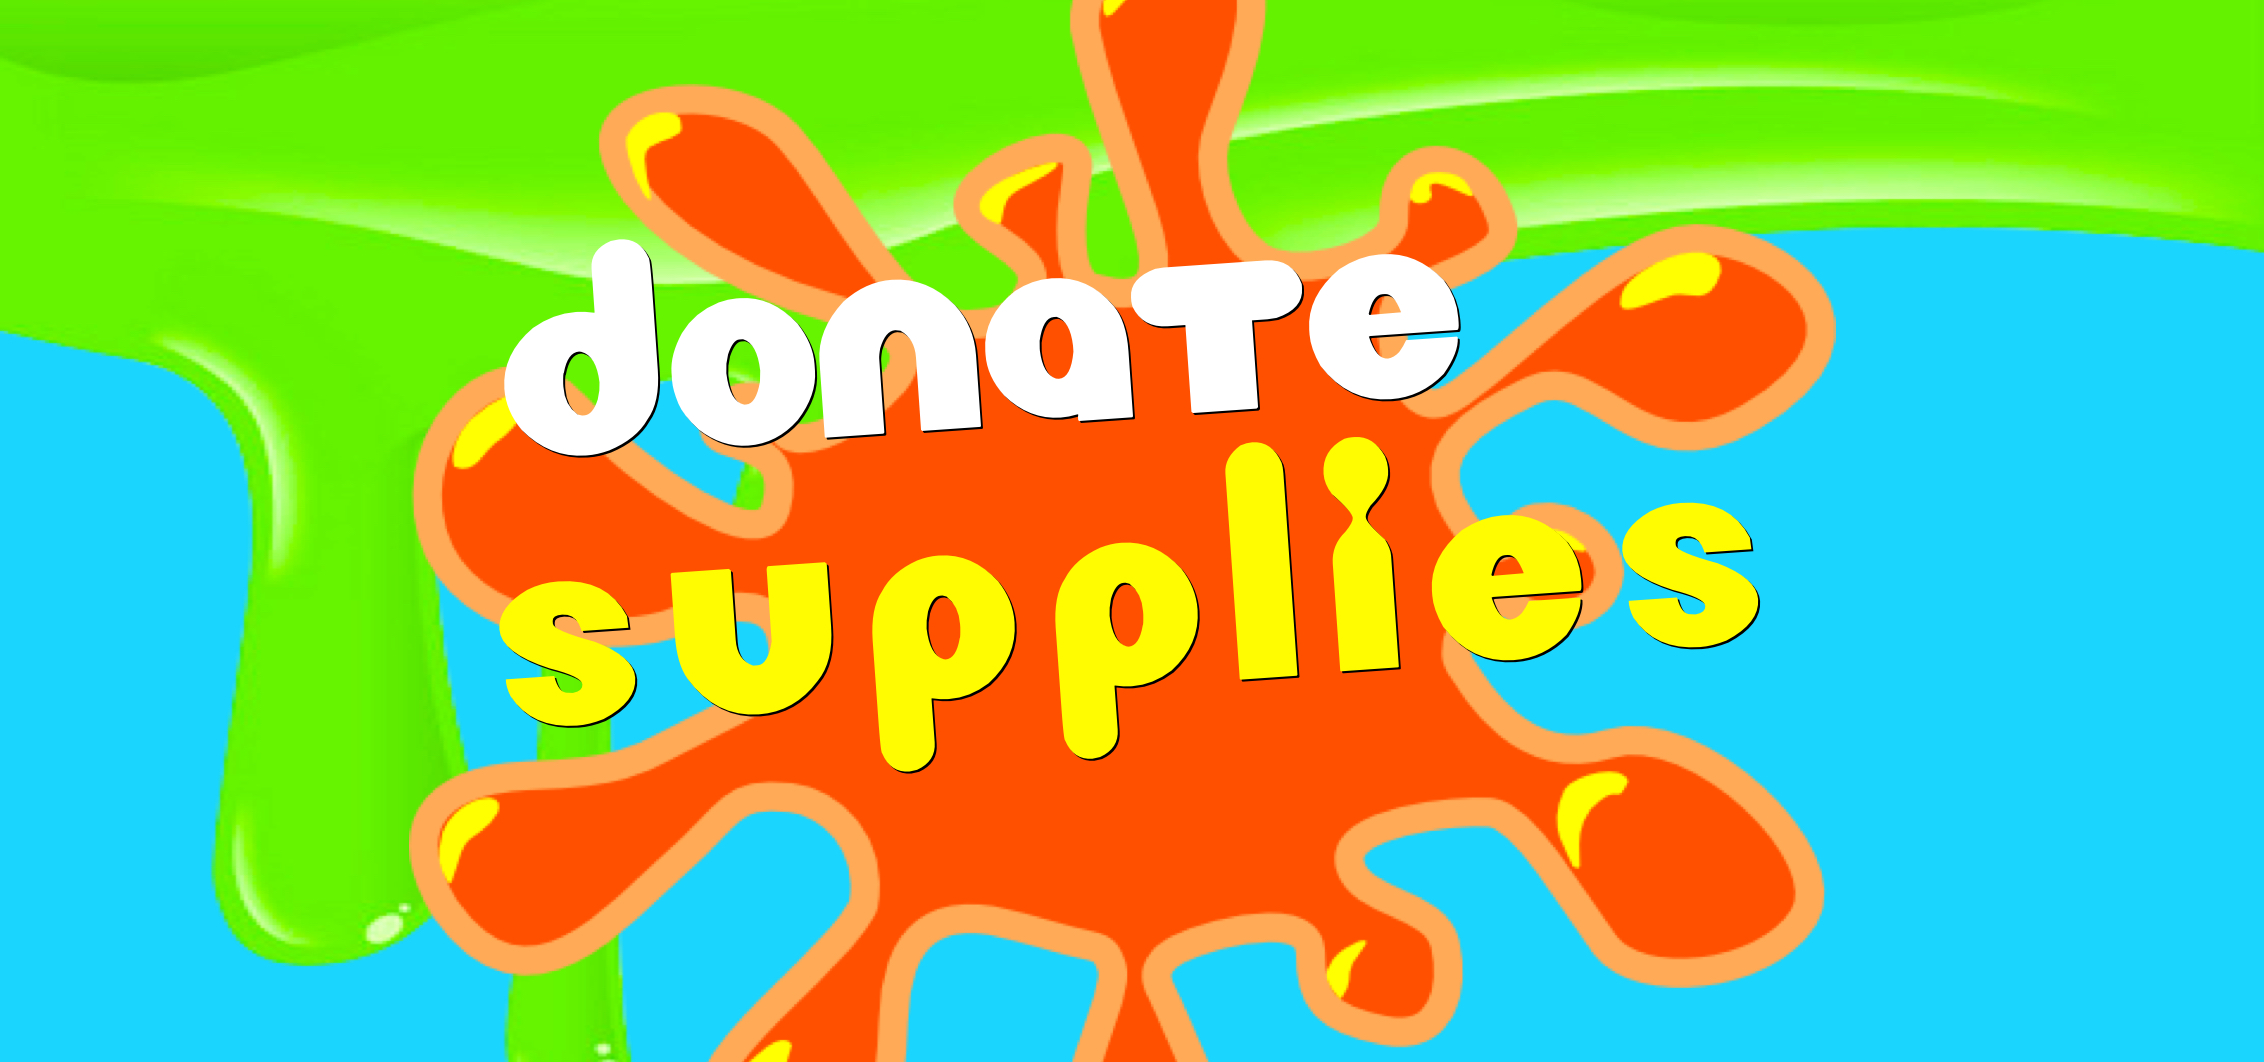 Ss donate.001